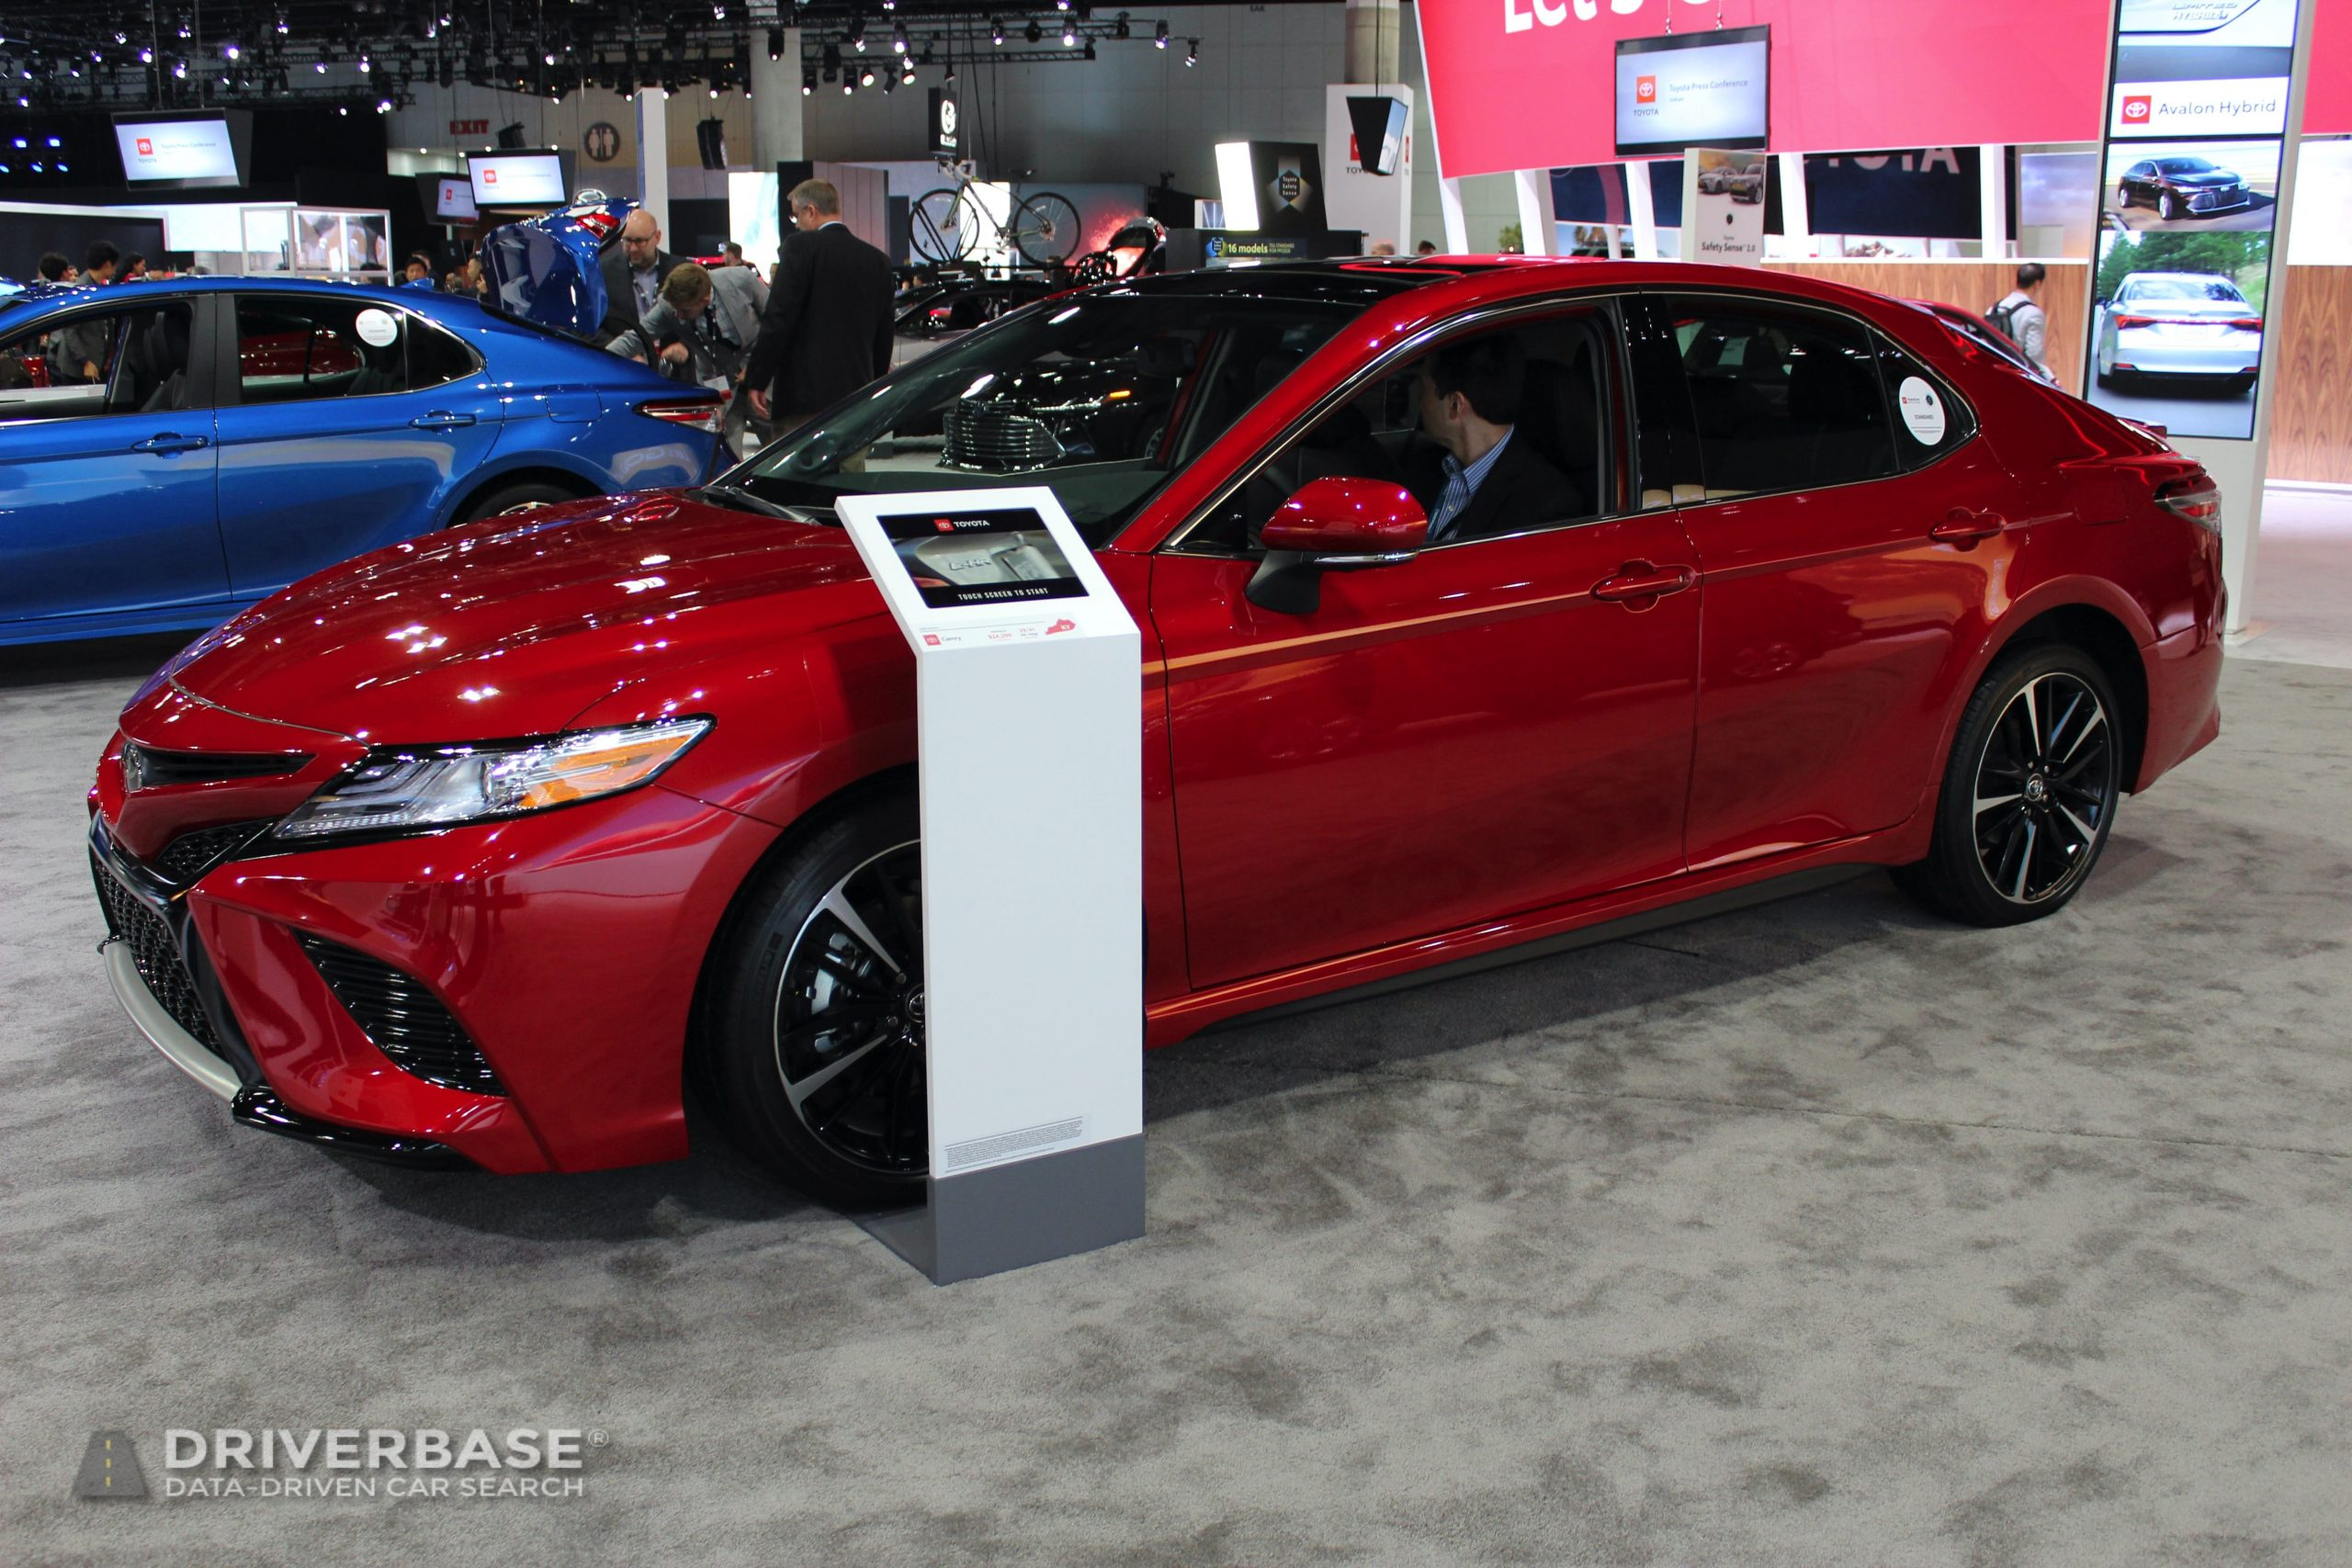 2020 Toyota Camry at the 2019 Los Angeles Auto Show